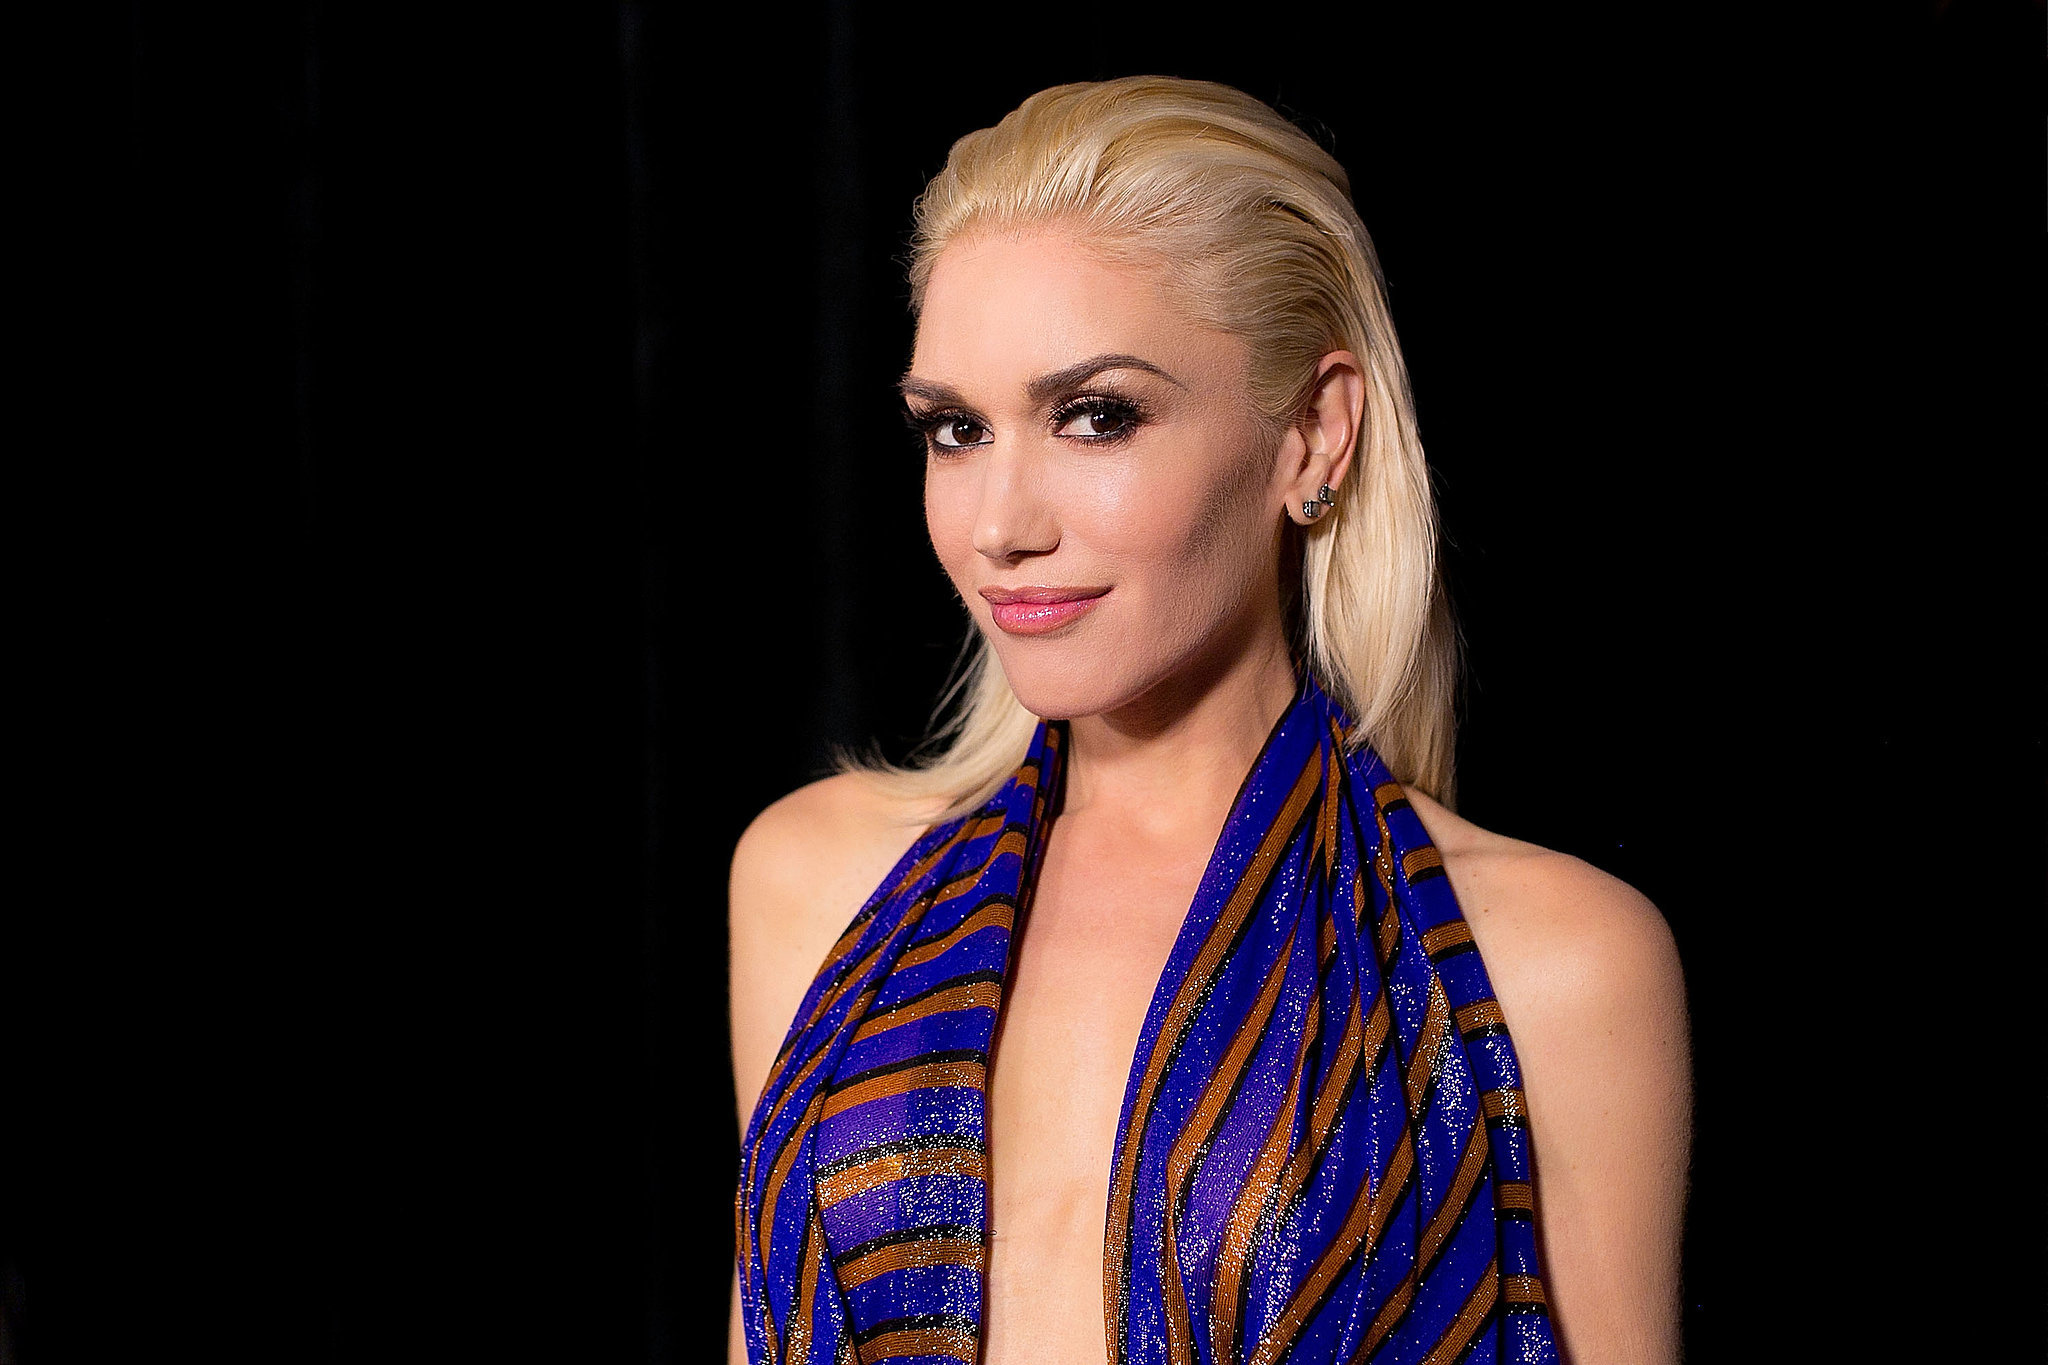 Gwen Stefani returns with new single 'Make Me Like You' – listen Gwen Stefani